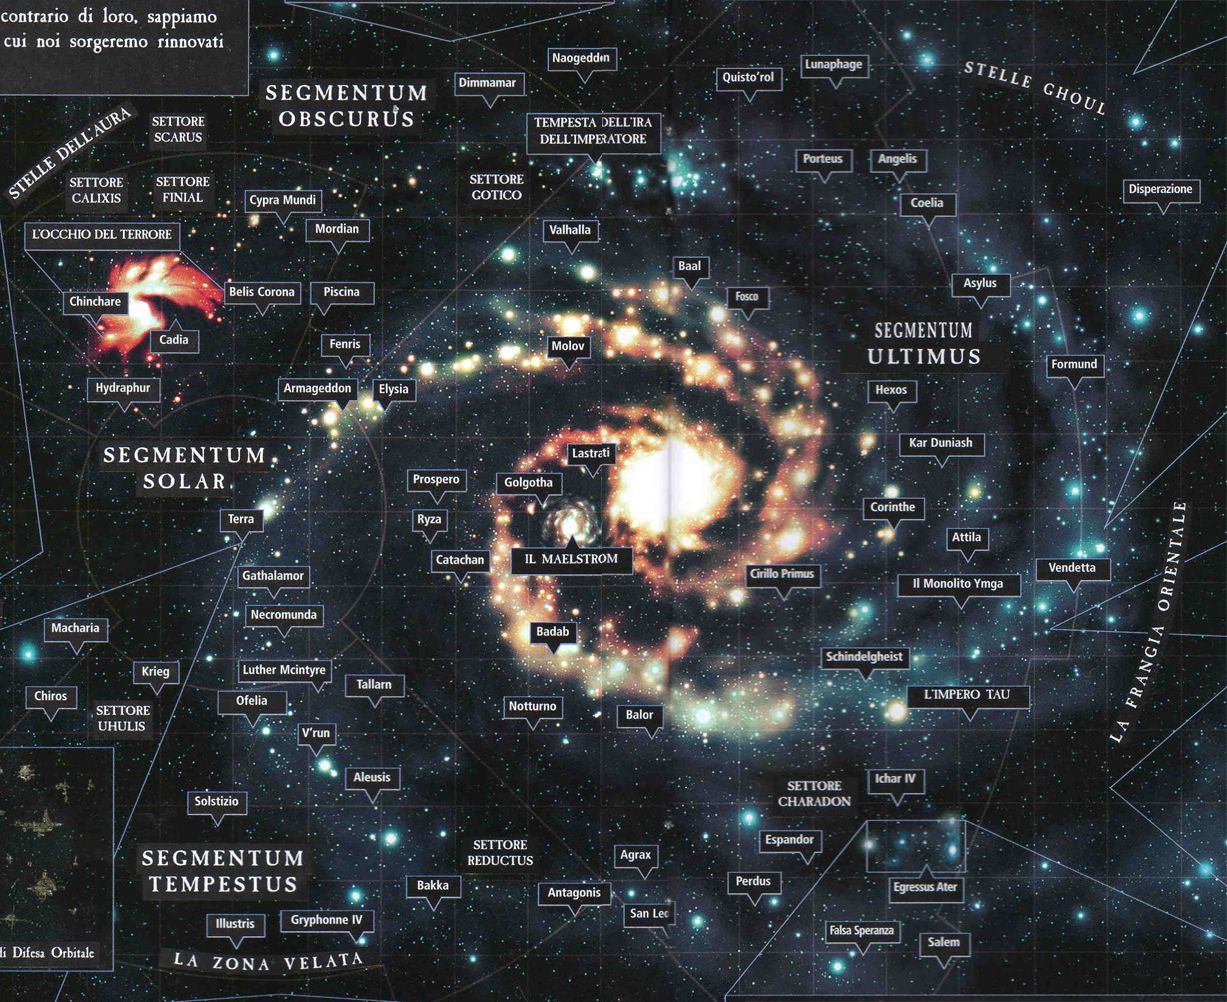 Pin by Robert Shea on 10K: Universe | Galaxy map, Space map ... Galaxy Map on continents map, hotspot map, lightning map, asteroid map, google map, universe map, local supercluster map, astronomy map, sun map, spectrum map, solar system map, supreme map, science map, custom map, milky way map, world map, constellation map, venus map, usa map, classic map,